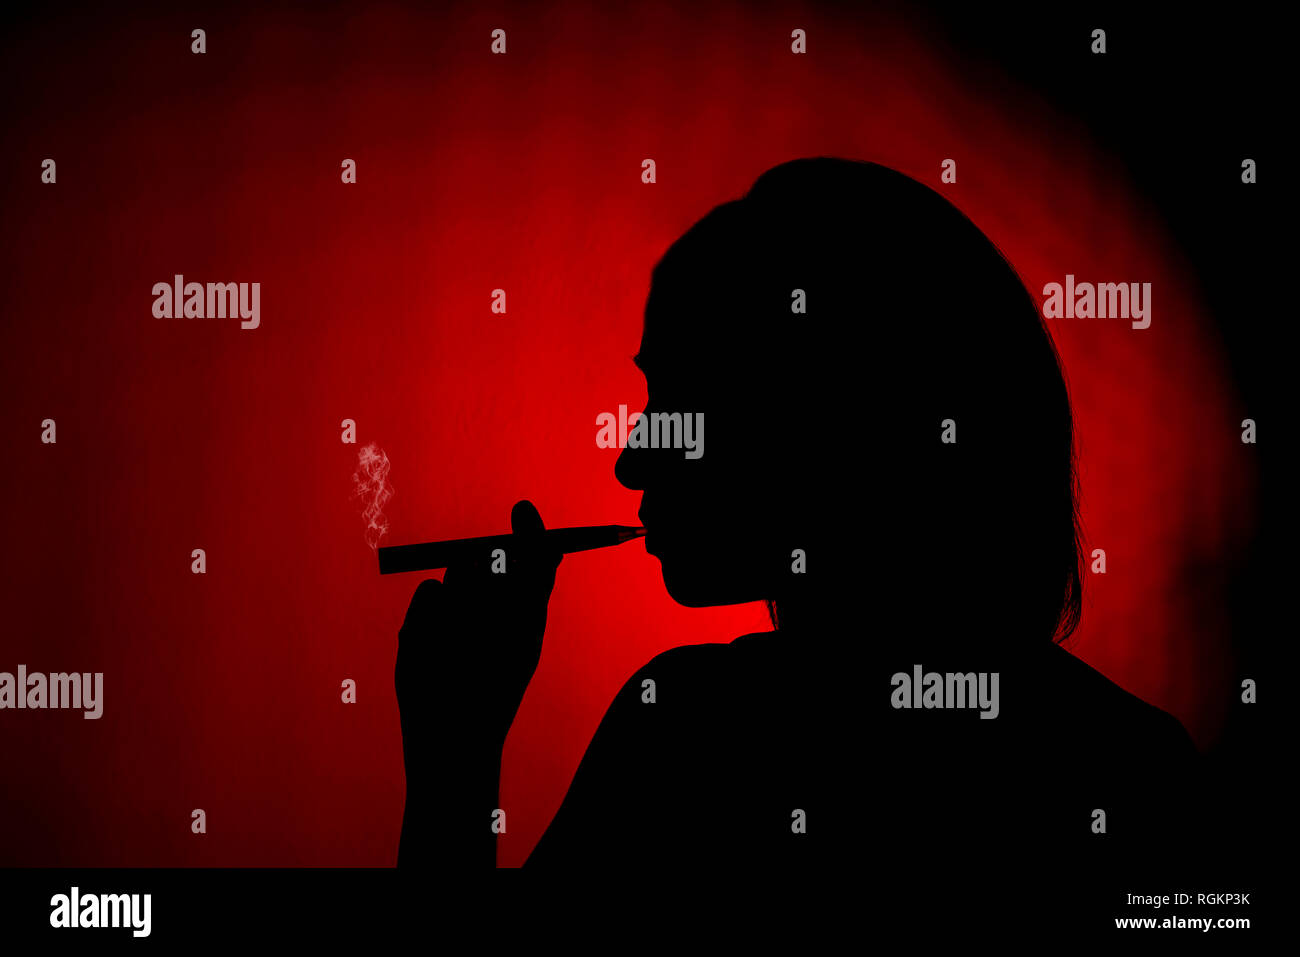 Silhouette of a female smoking an ecig on a red background - Stock Image